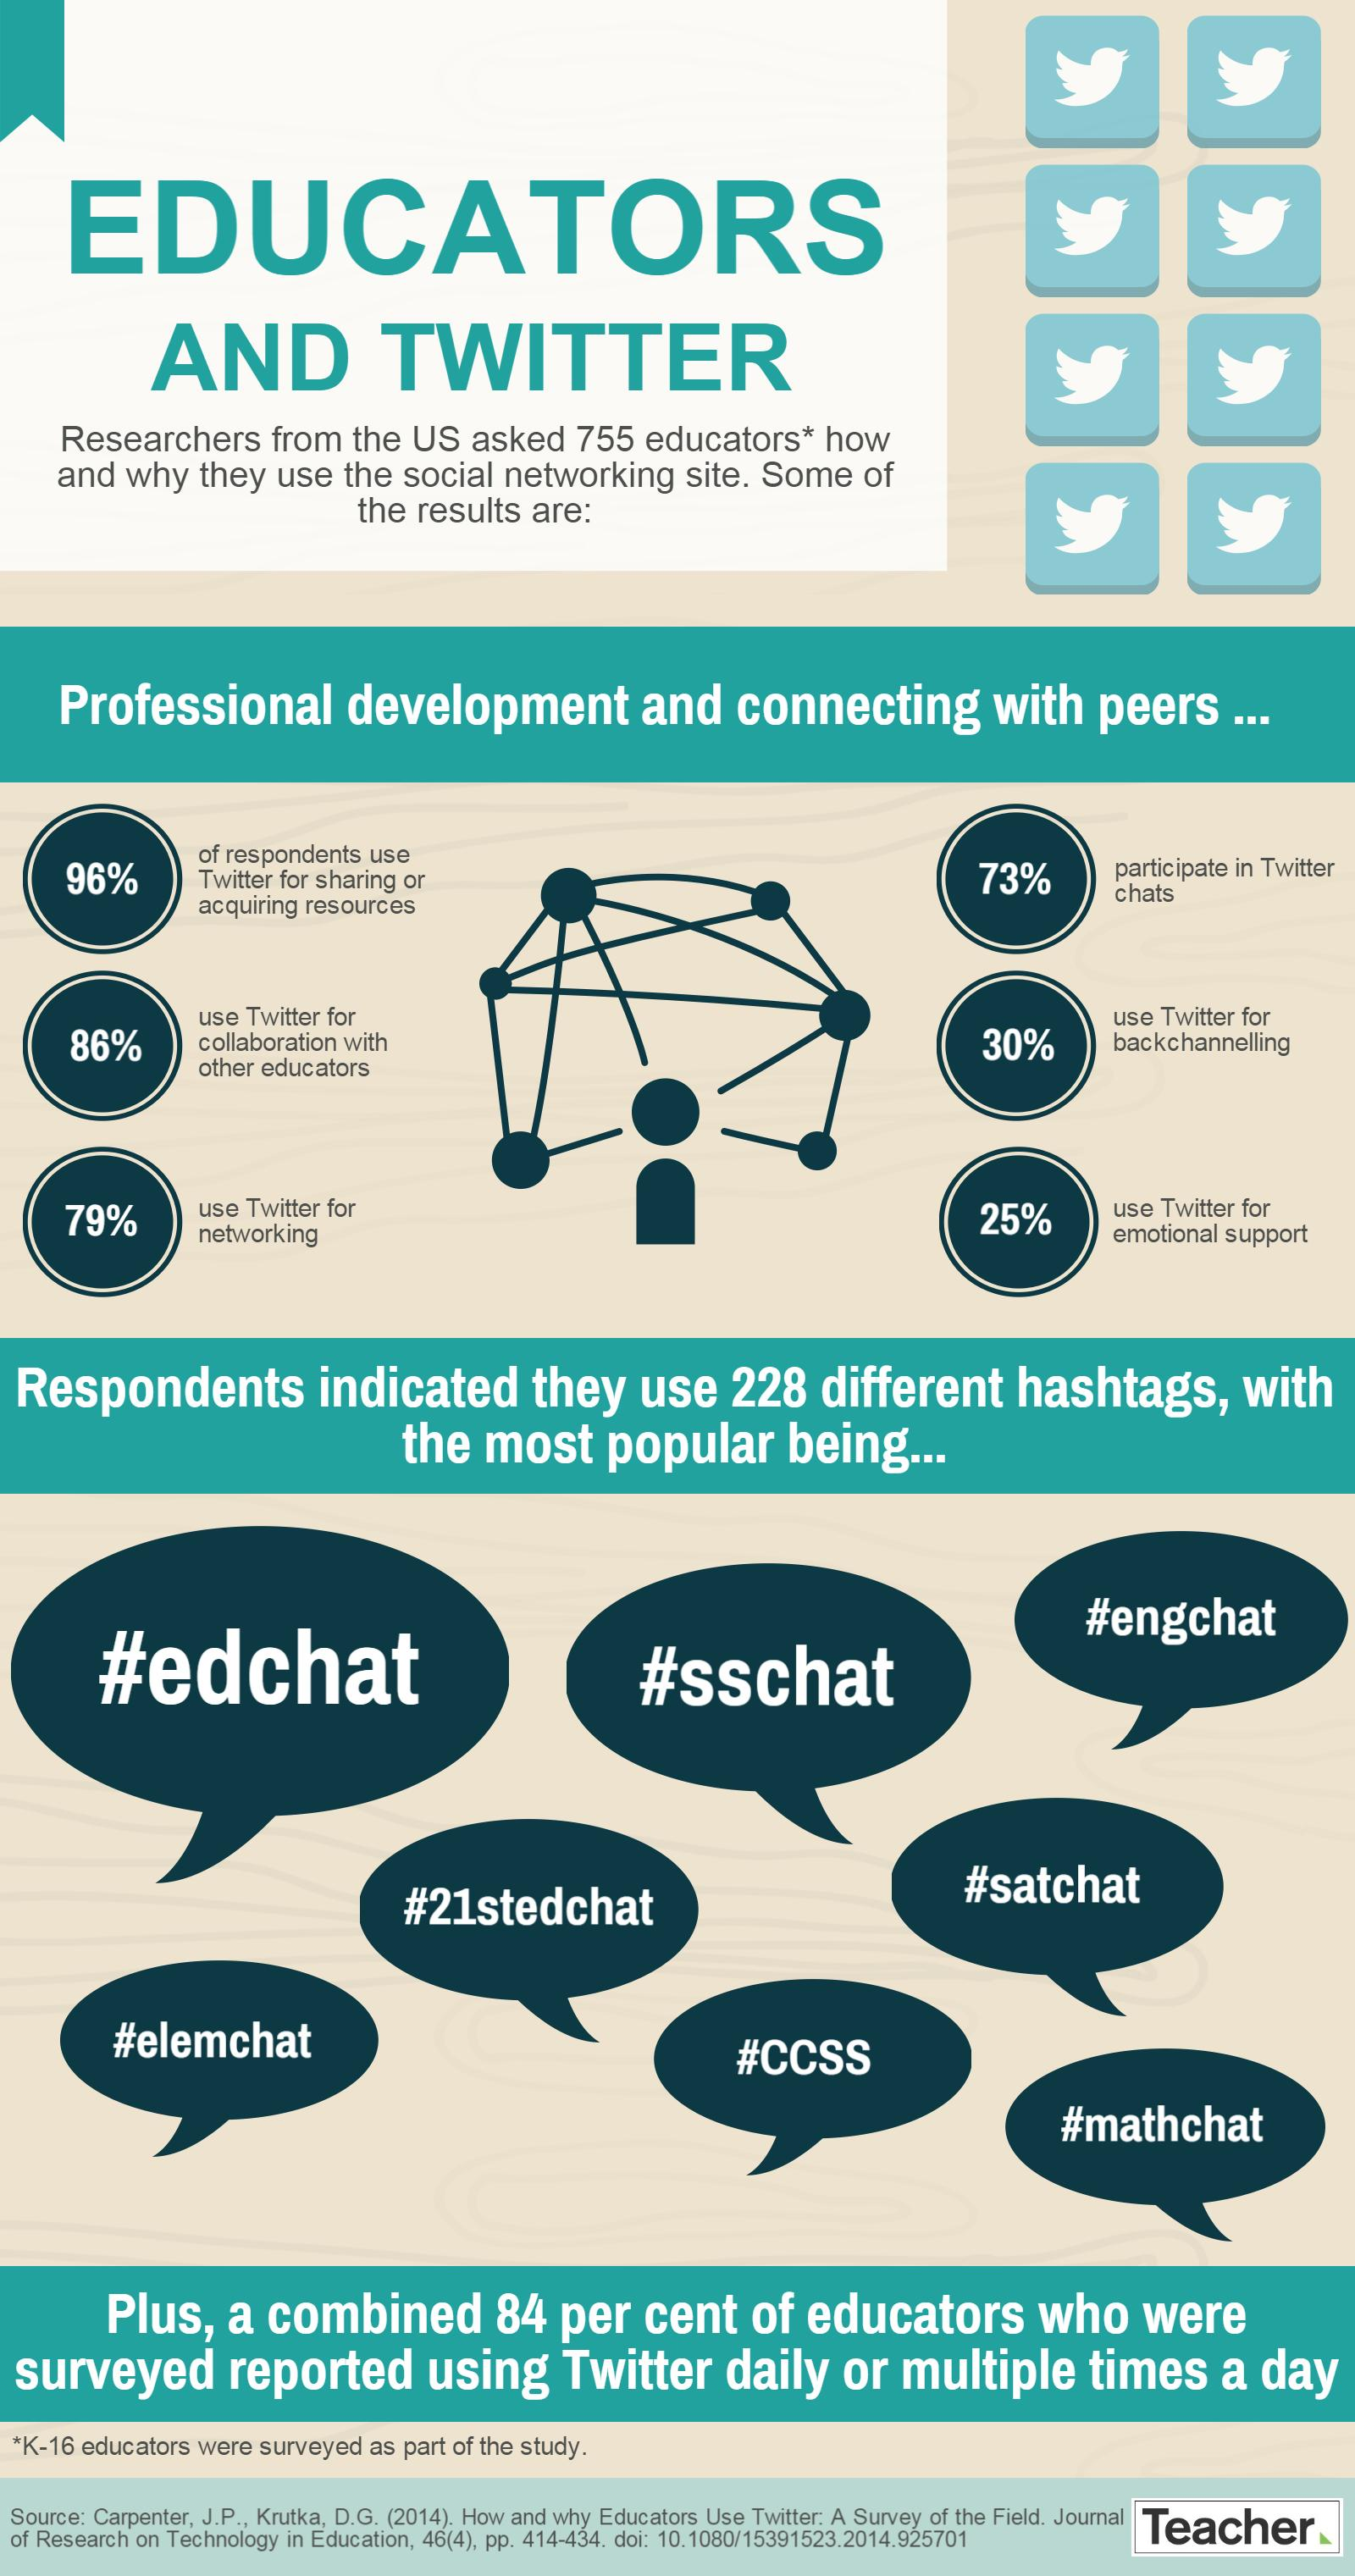 How and why are educators using Twitter?